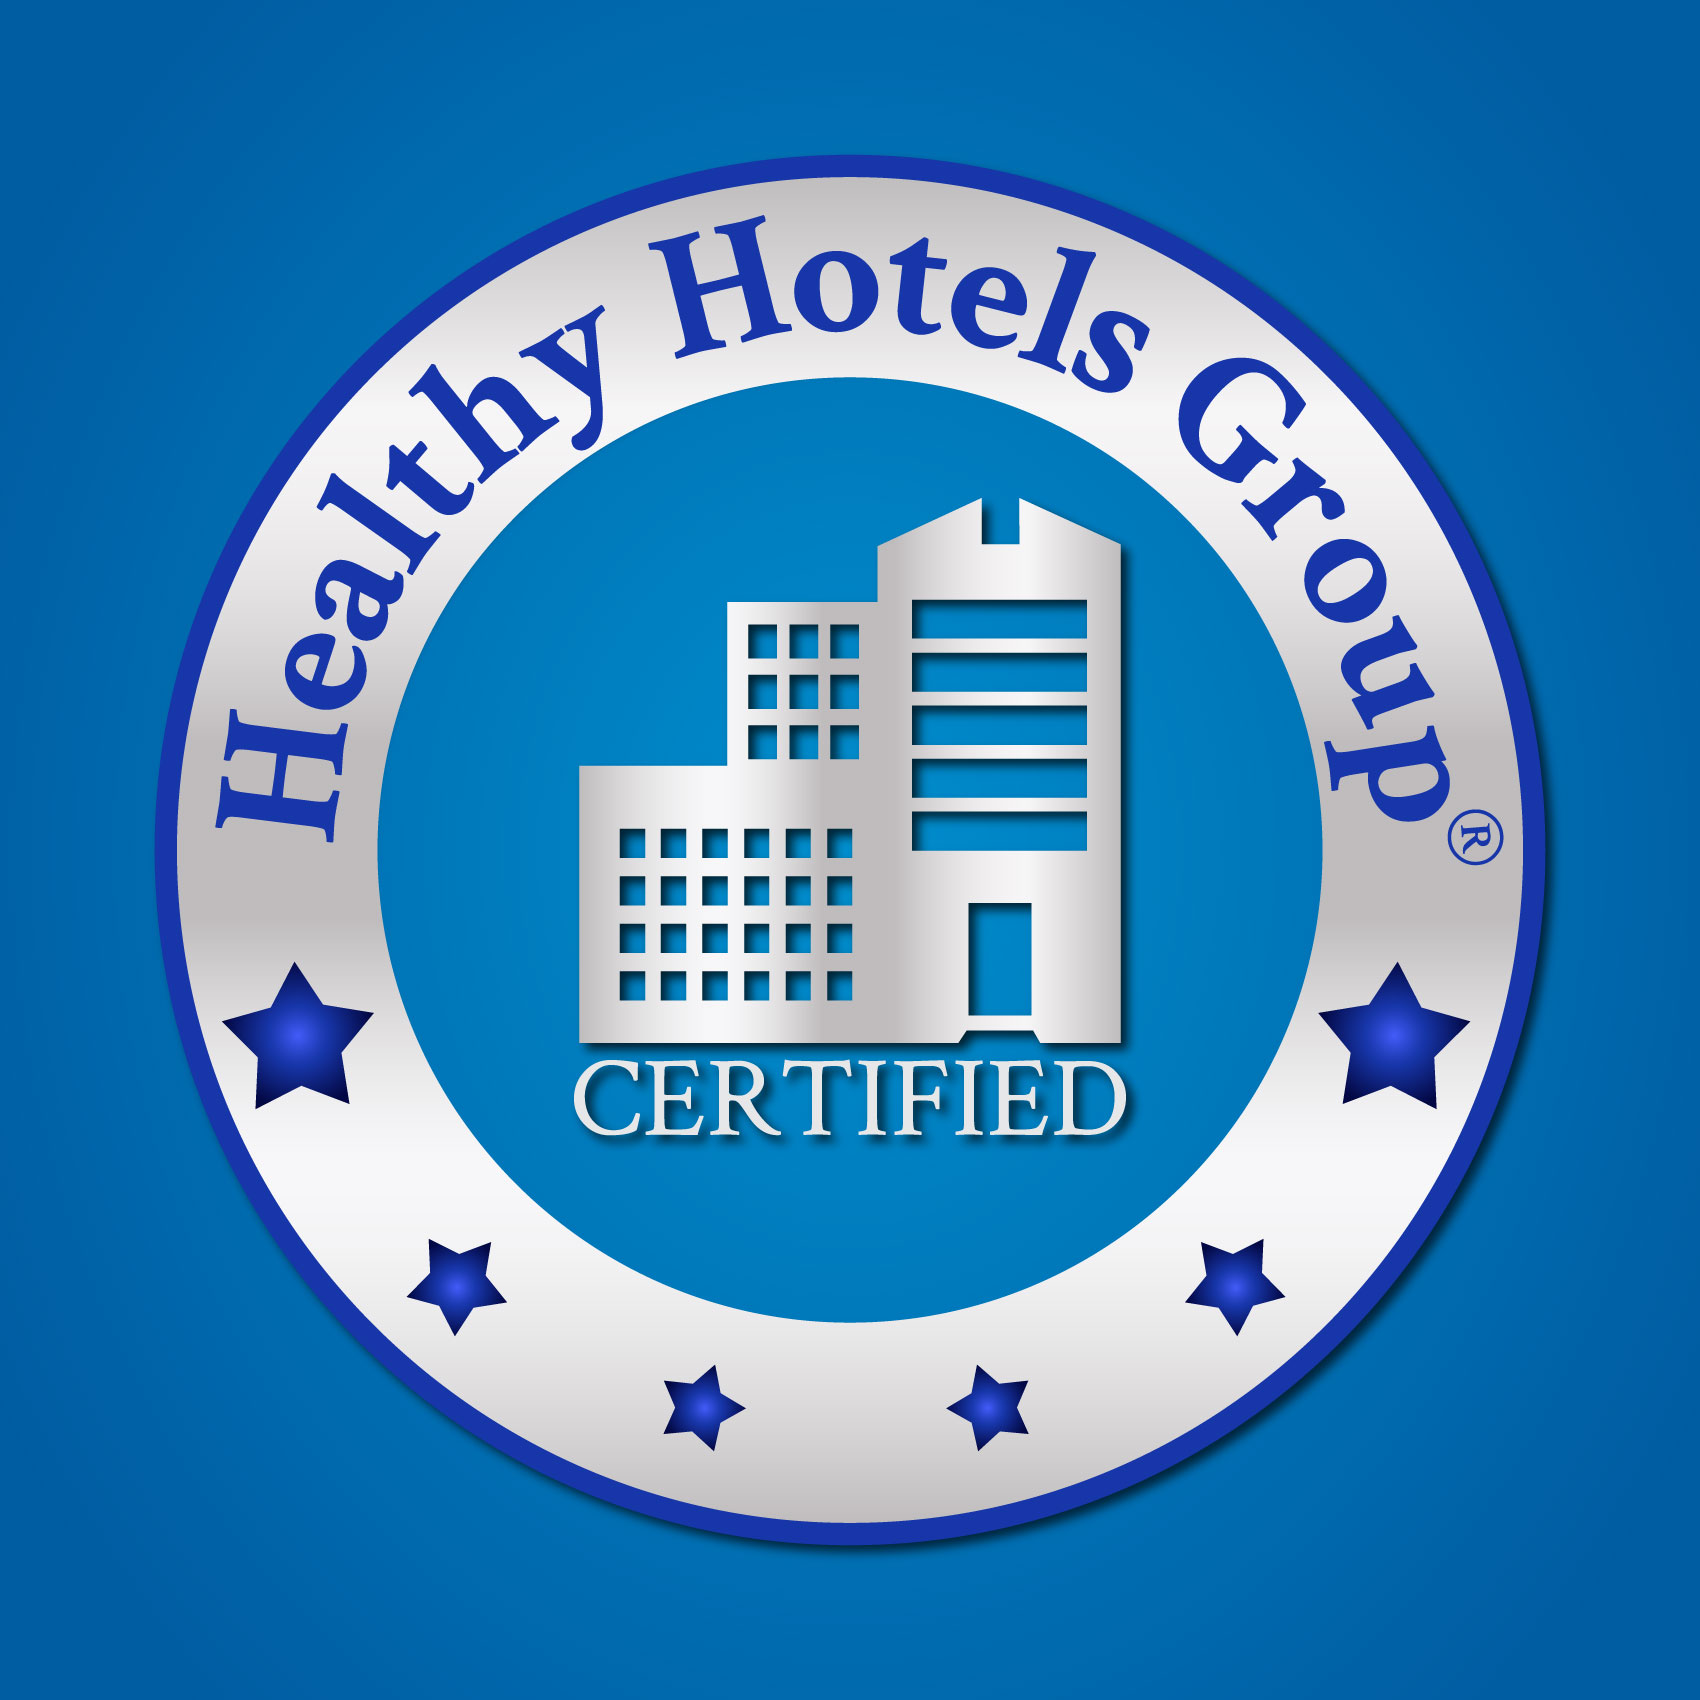 Healthy Hotels Group